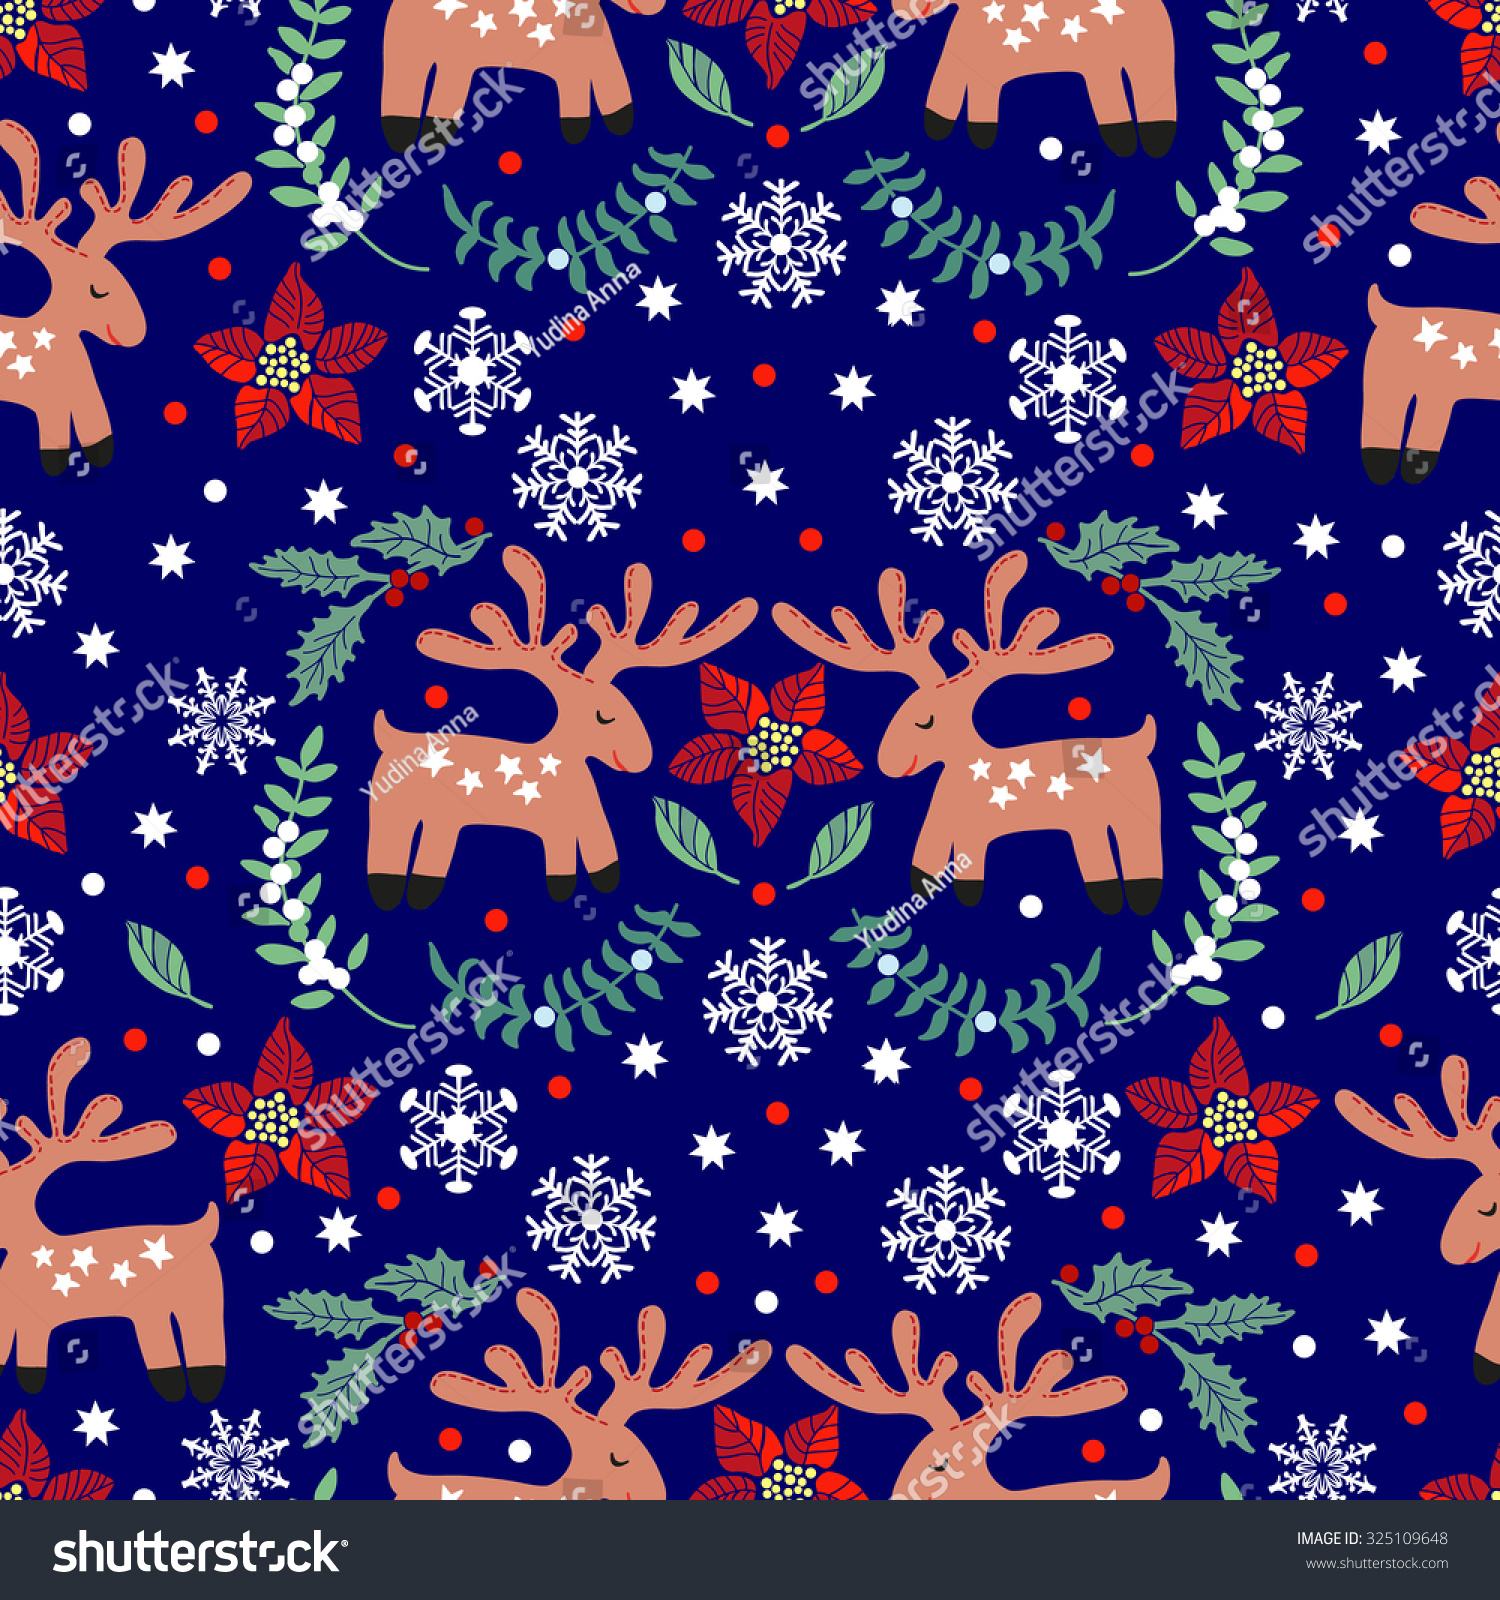 Seamless fir tree scandinavian pattern textile background wrapping - Pattern With Funny Christmas Deer Hand Drawing Seamless For Fabric Design Gift Wrapping